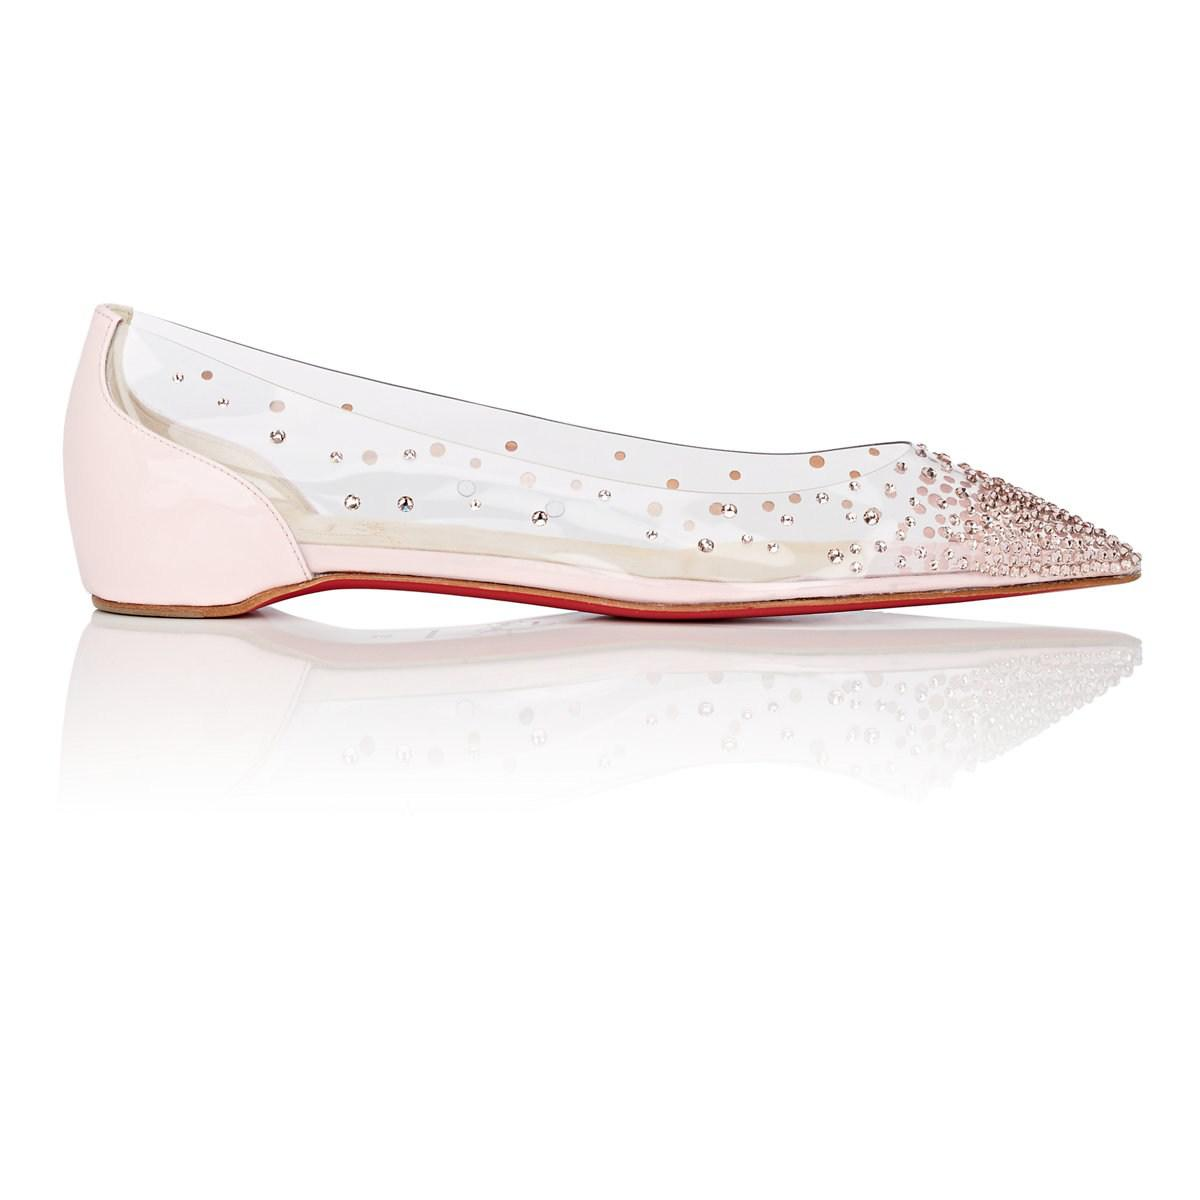 64a828af5a8 Lyst - Christian Louboutin Degrastrass Pvc   Patent Leather Flats in ...